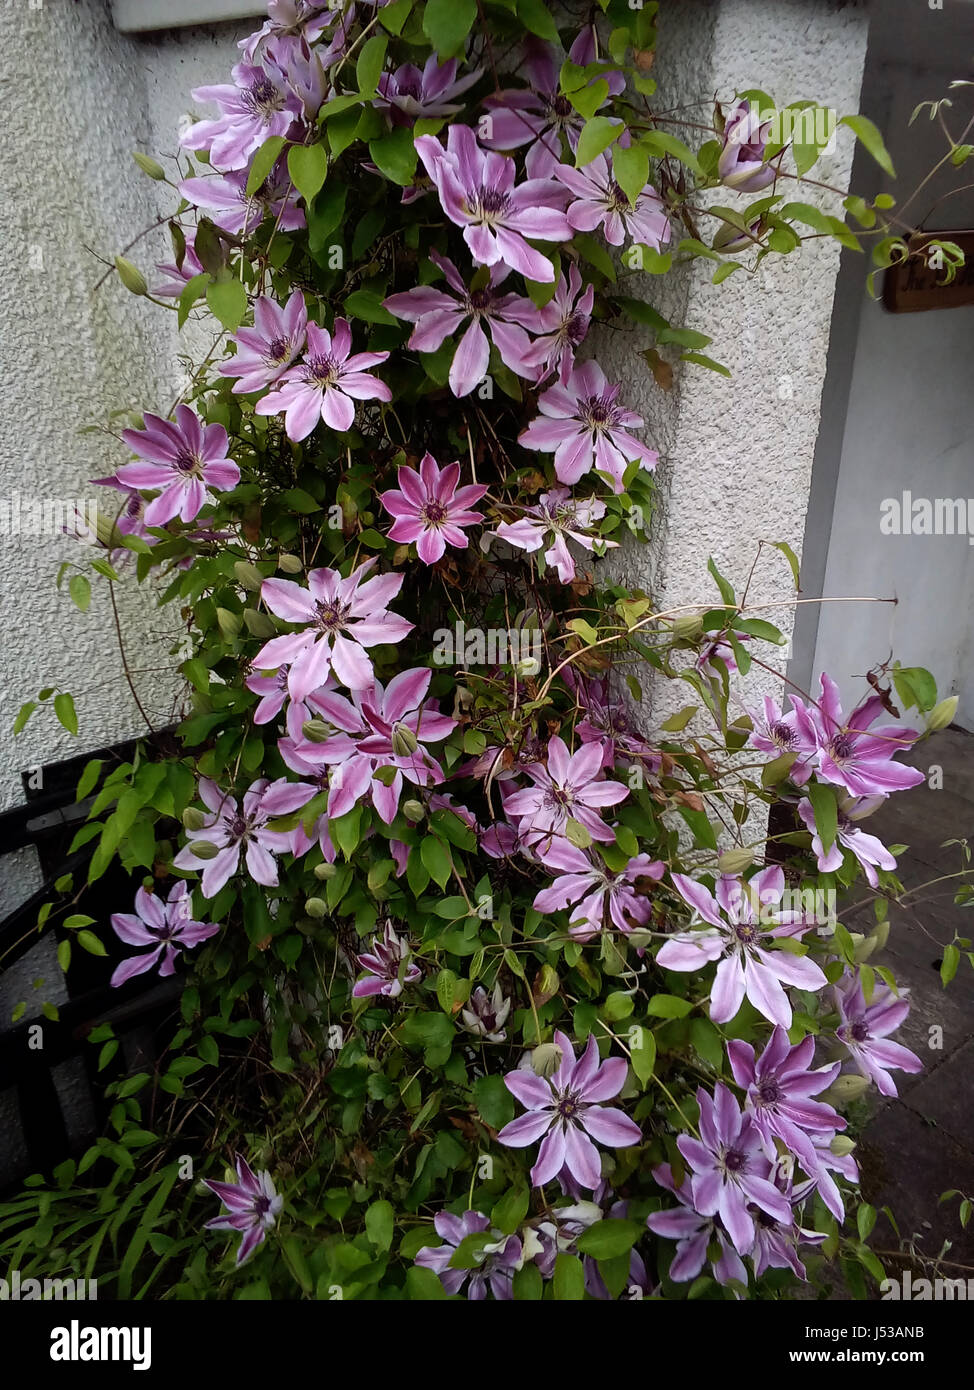 Clematis Nellly Moser, family Ranunculaceae, is an evergreen shrub, a climbing, twining deciduous herbaceous perennial - Stock Image